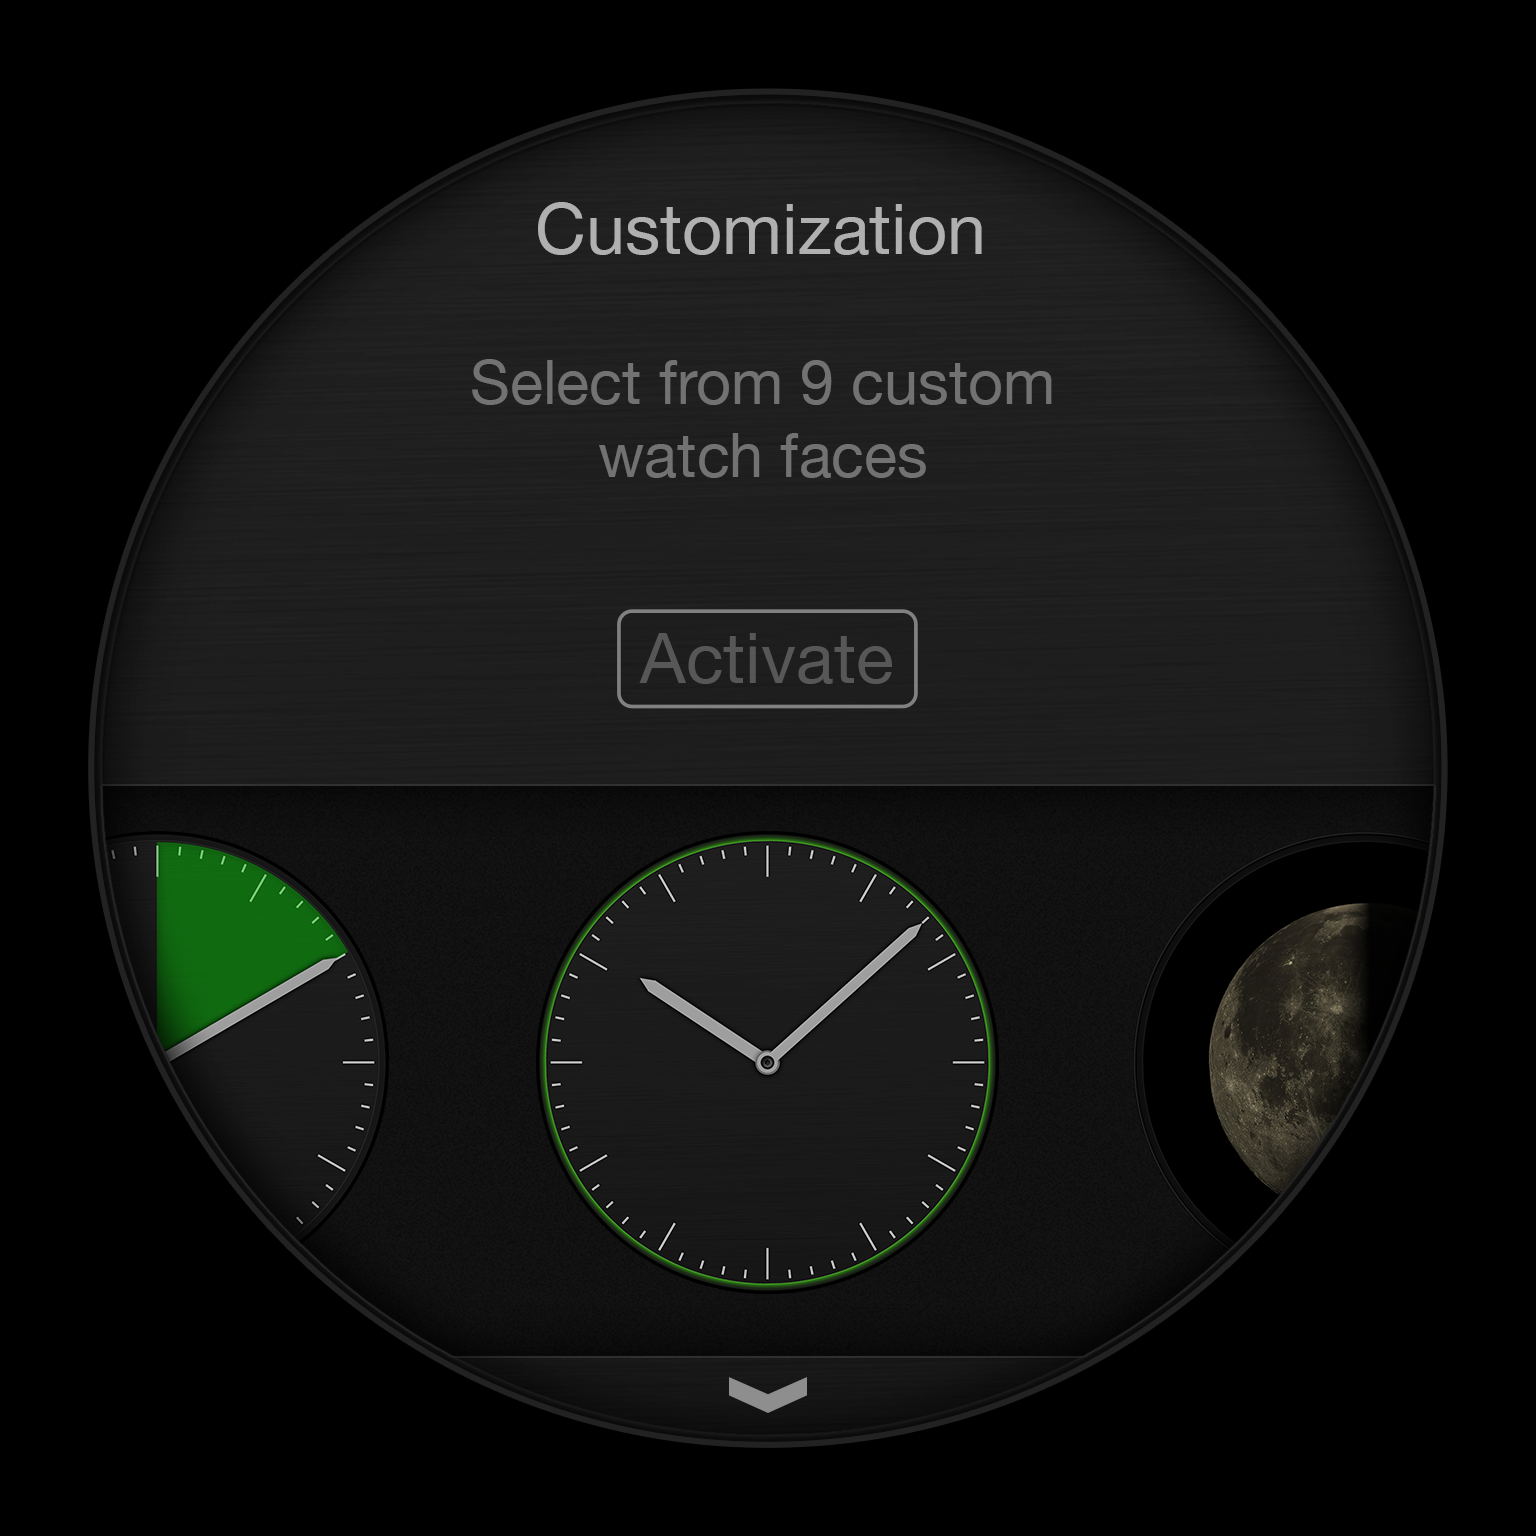 2 Custom-watch-face-design-for-smartwatch